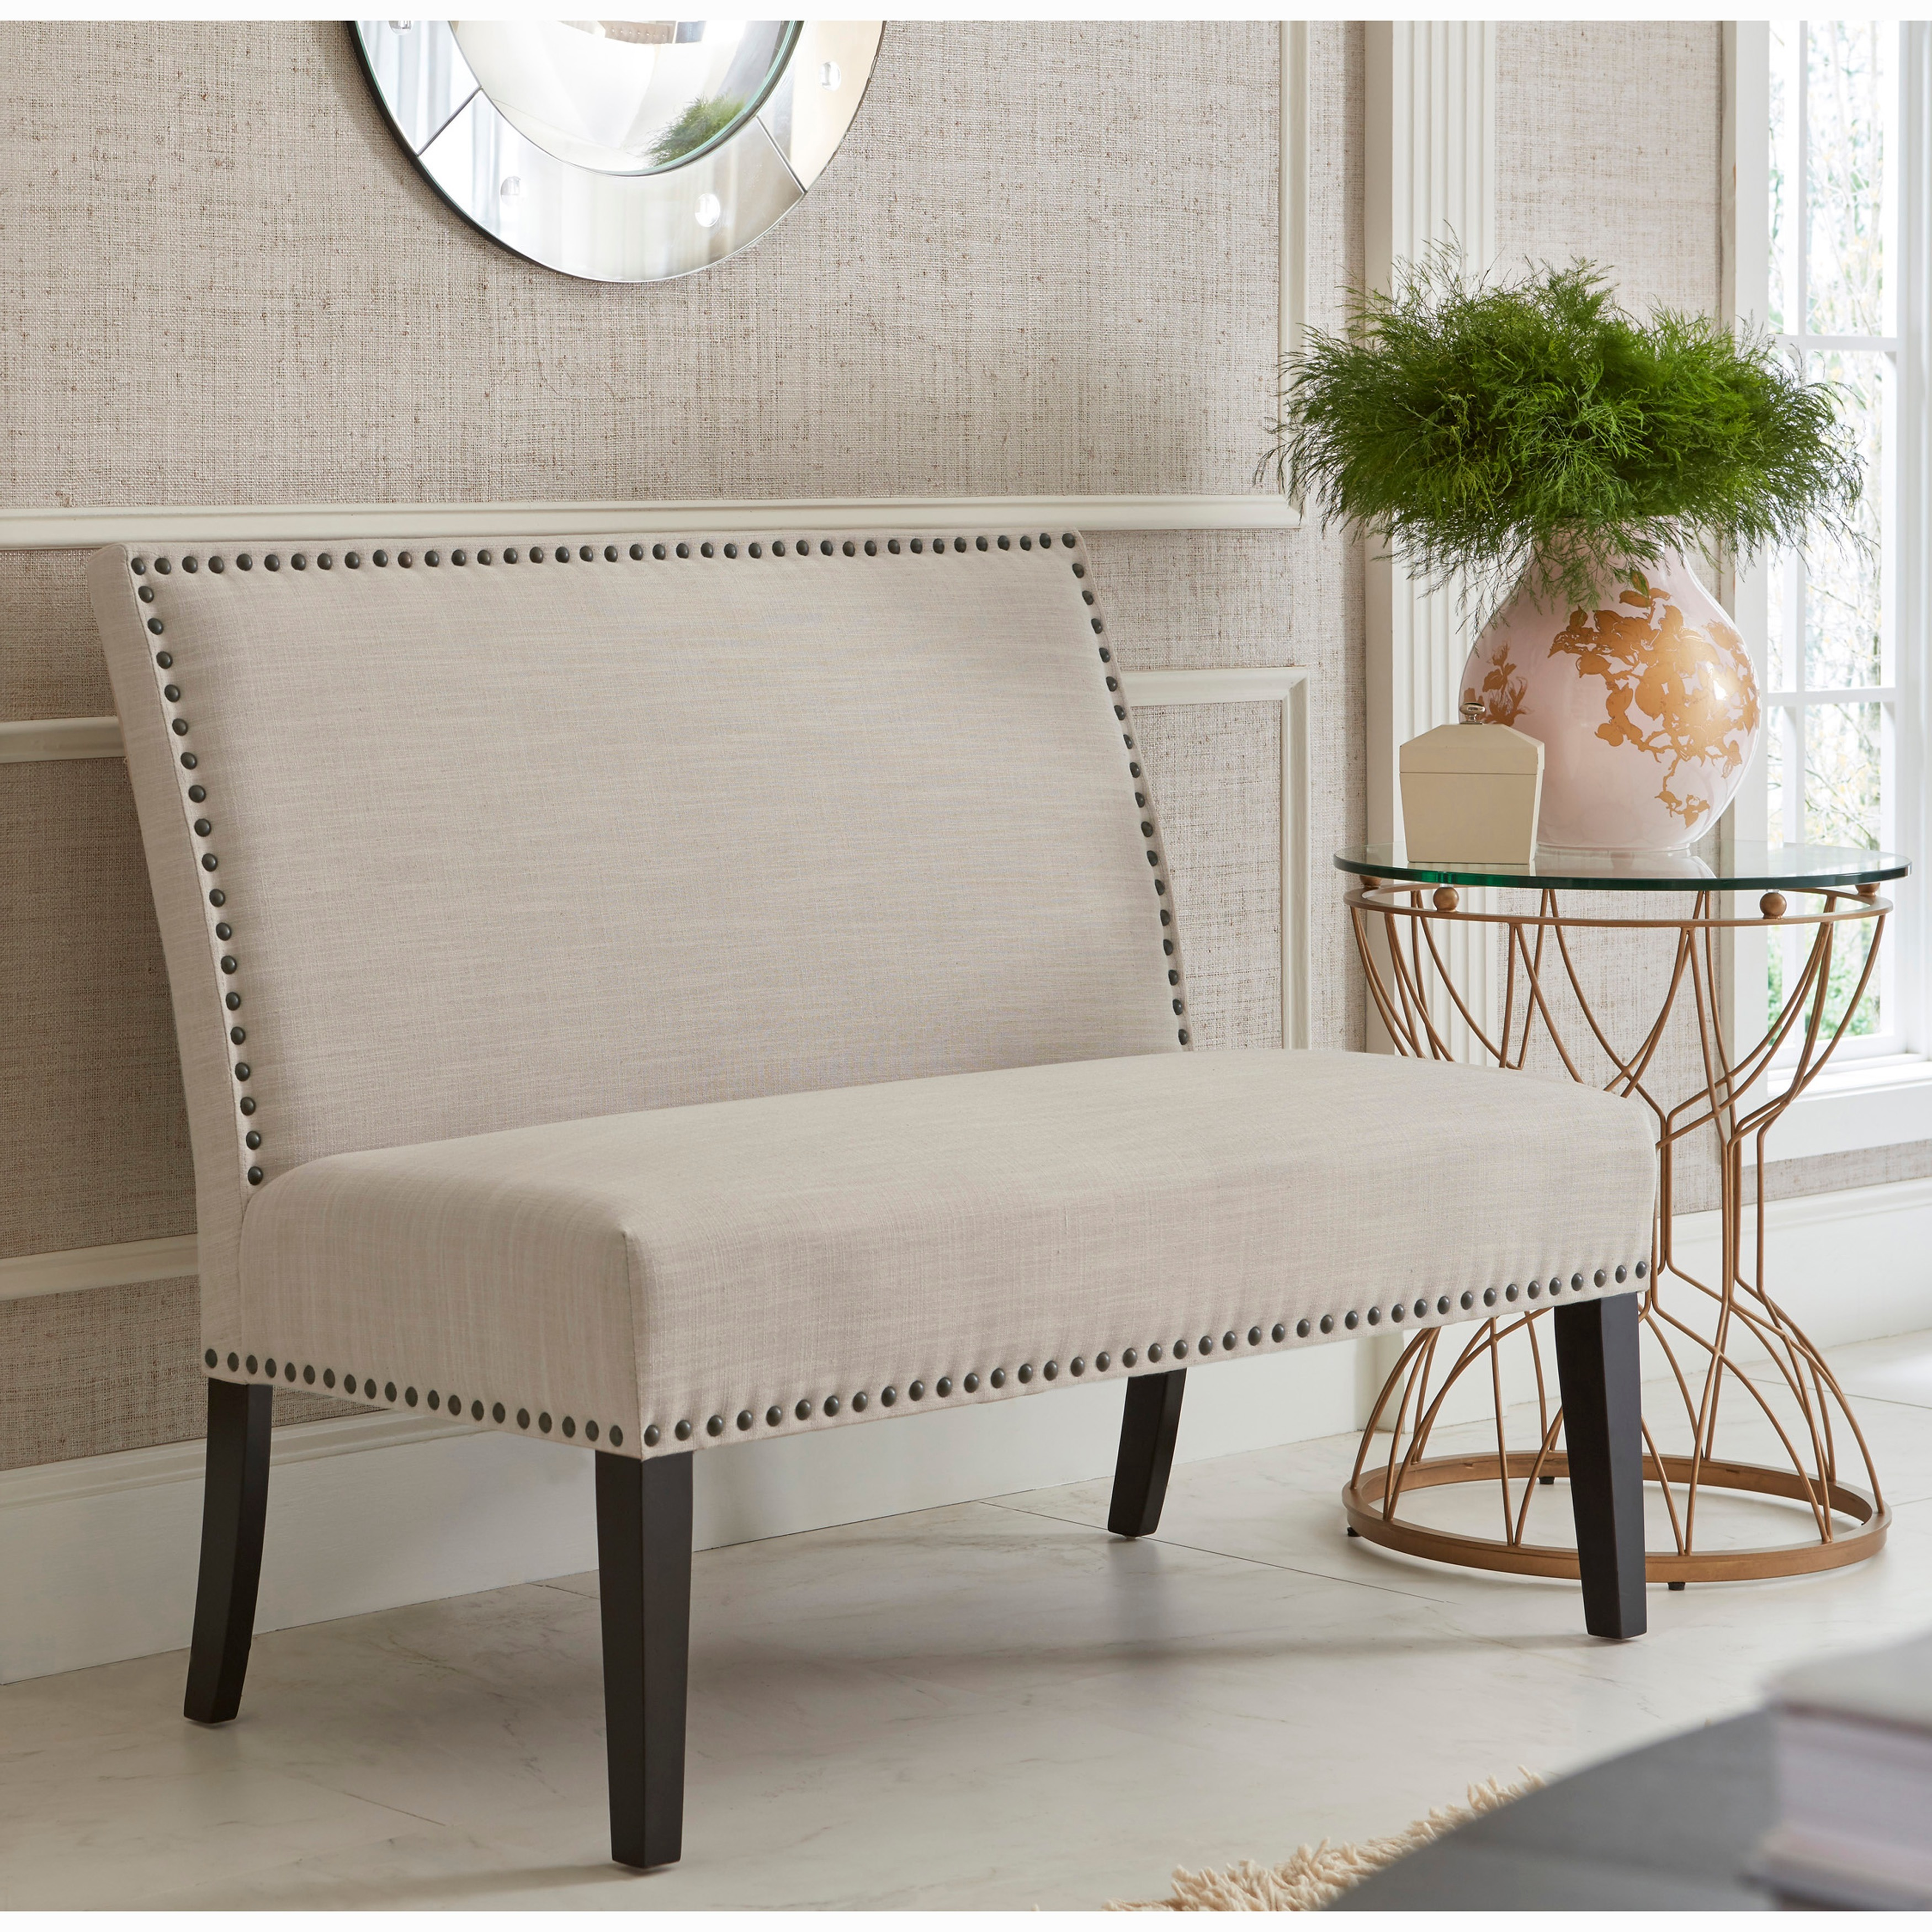 Cream Upholstered Nail Head Trim Banquette Bench Free Shipping  # Muebles Tagalog